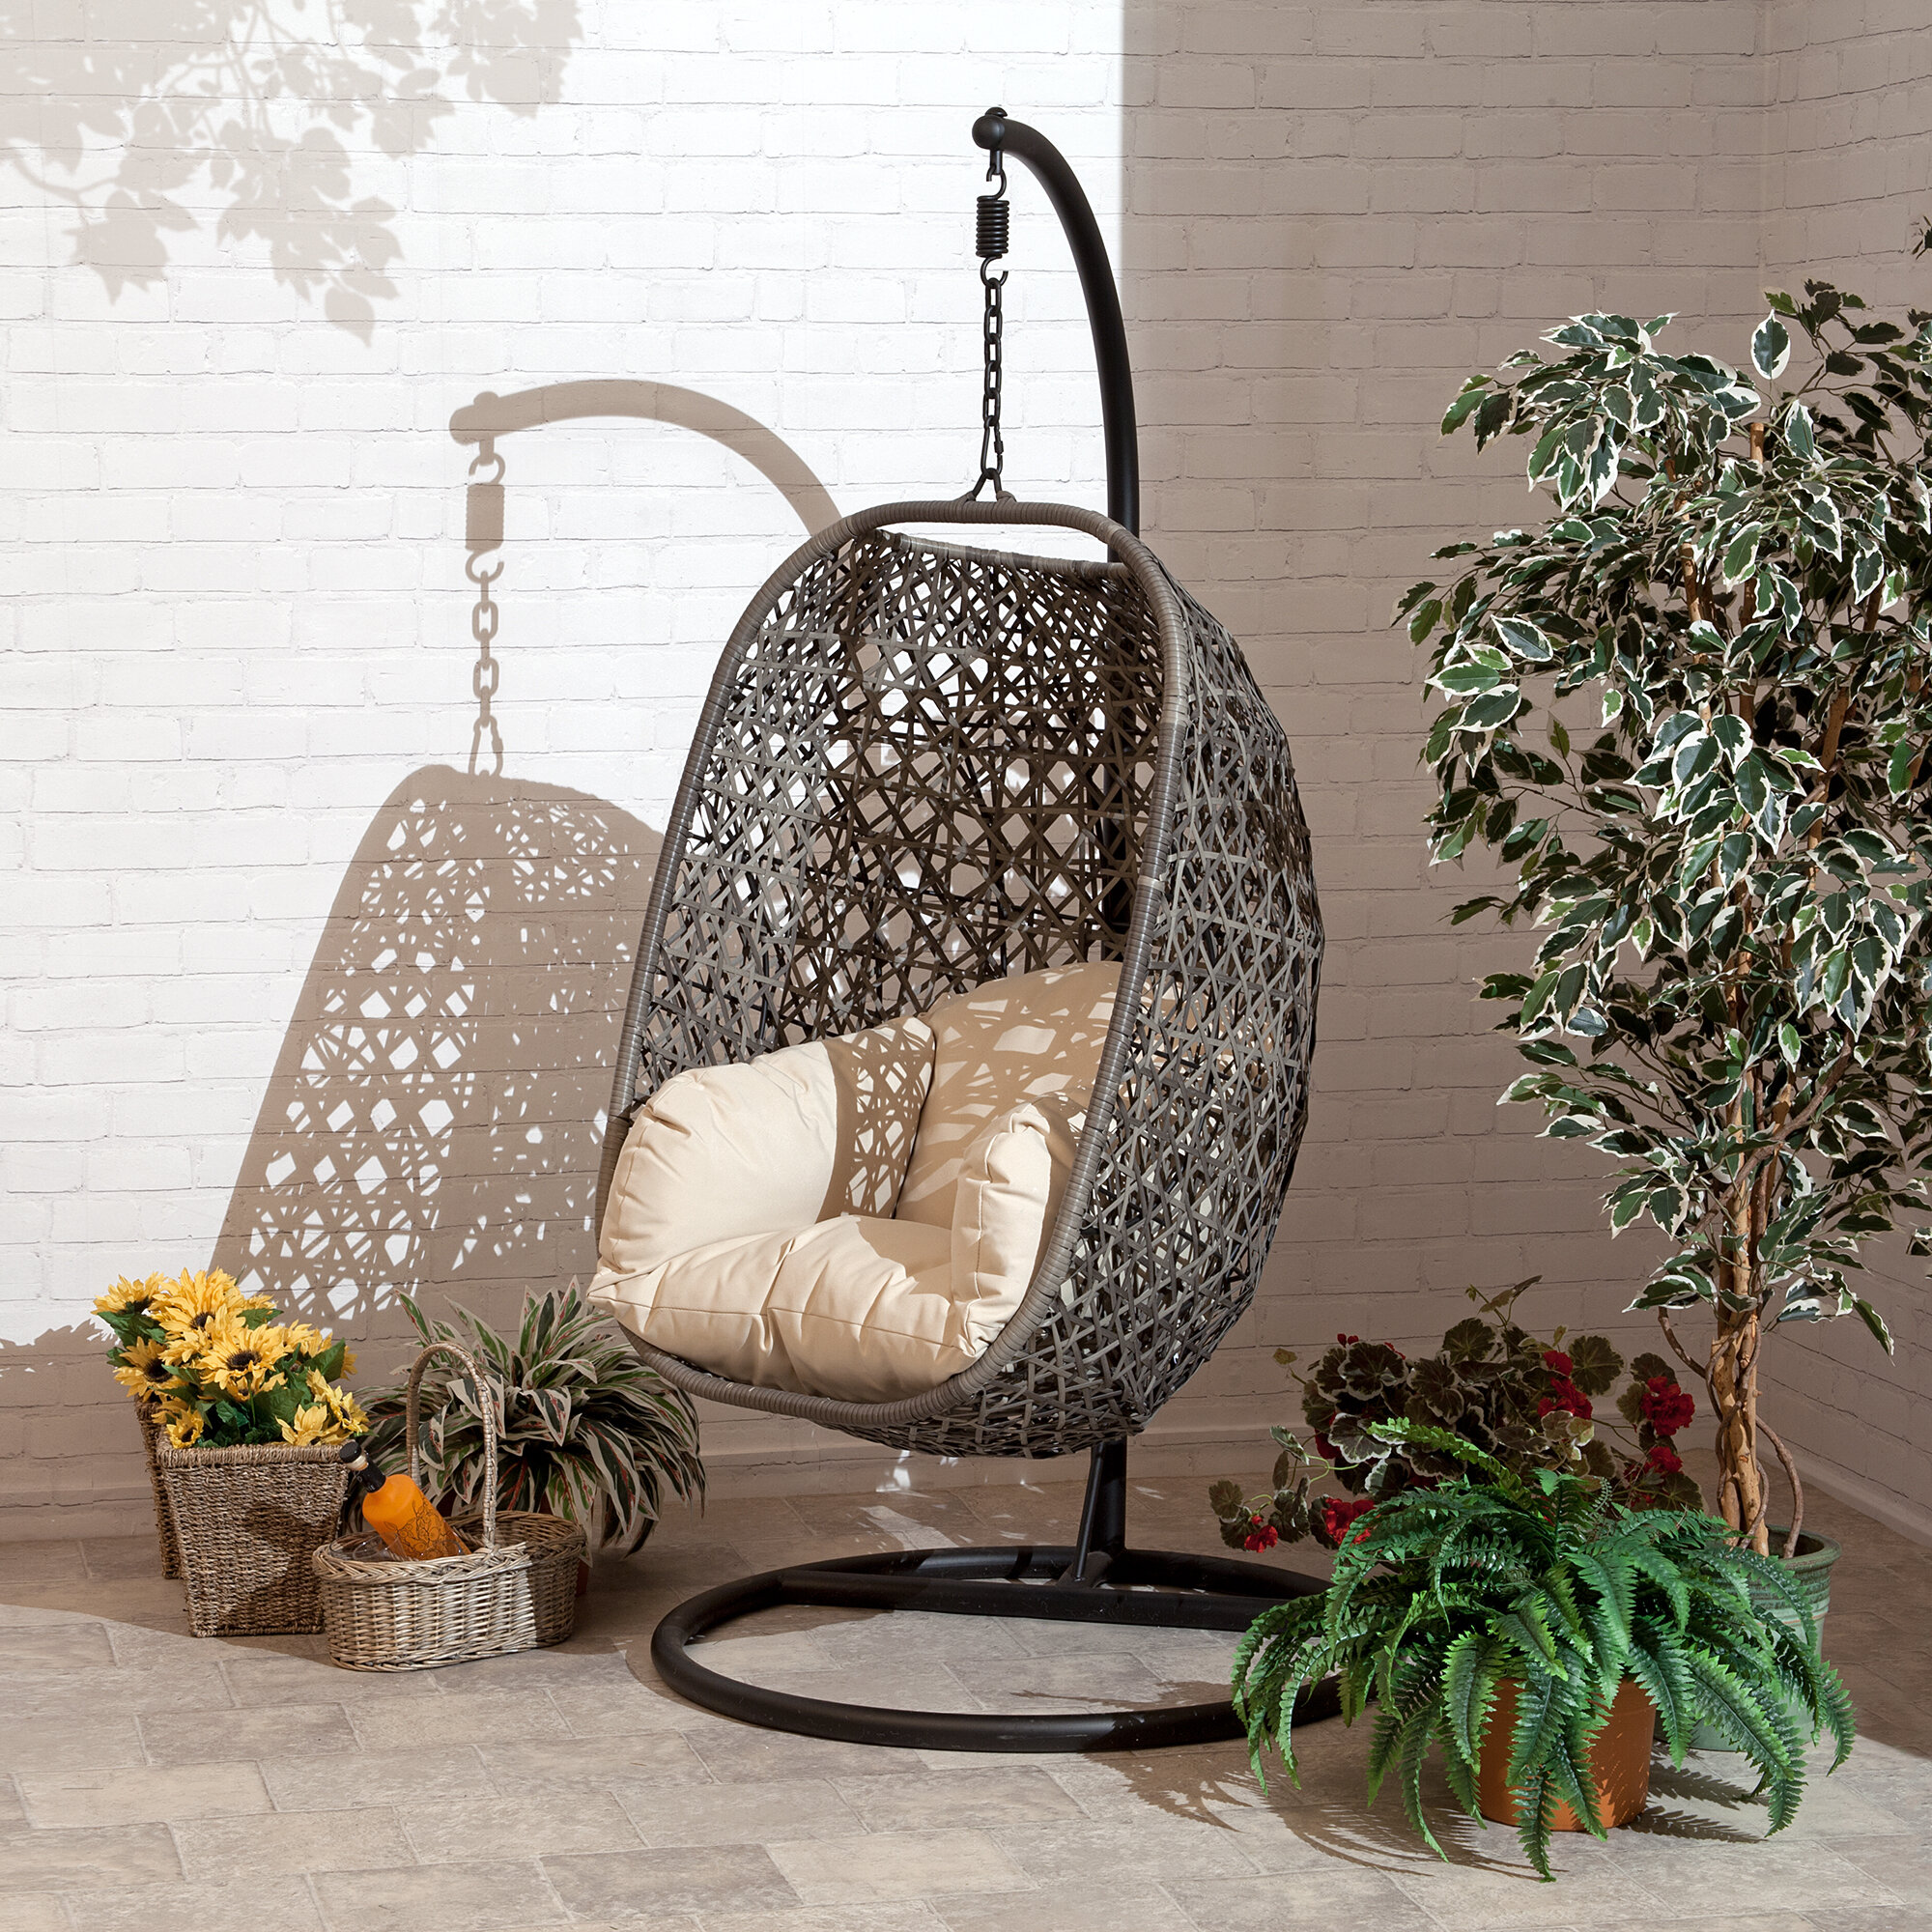 Bungalow Rose Gurganus Cocoon Patio Chair With Cushion Reviews Wayfair